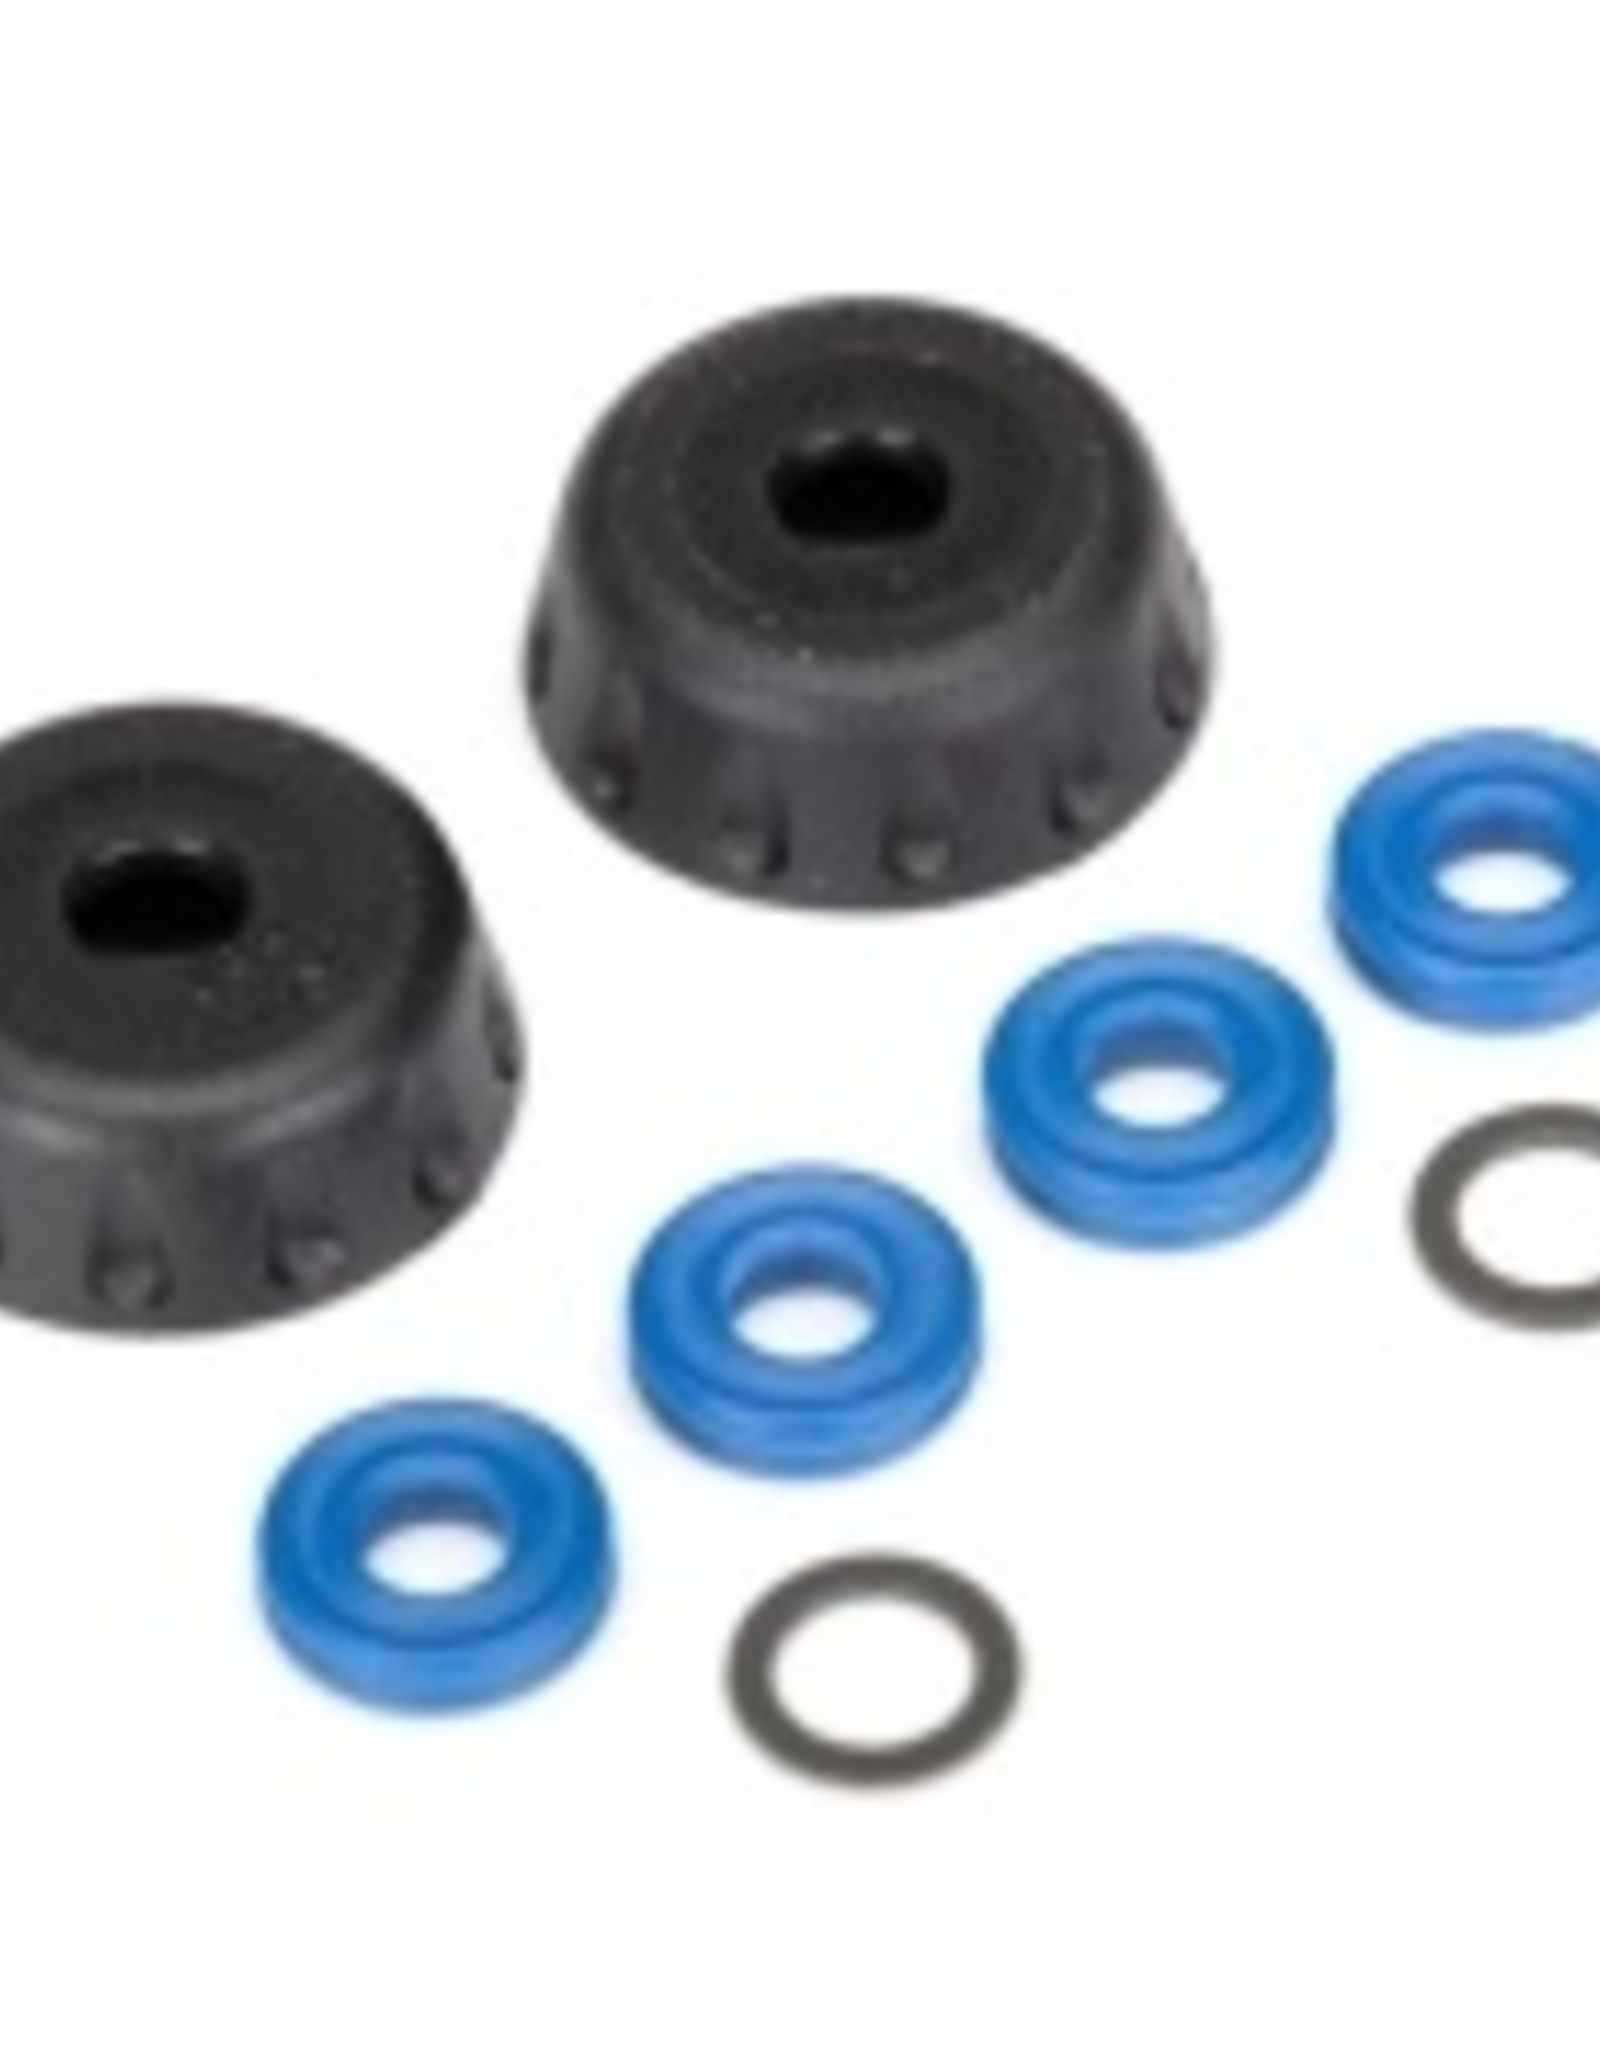 Traxxas Traxxas Unlimited Desert Racer Double seal kit, GTR shocks (x-rings (4)/ 4x6x0.5mm PTFE-coated washers (2)/ bottom caps (2)) (renews 2 shocks)